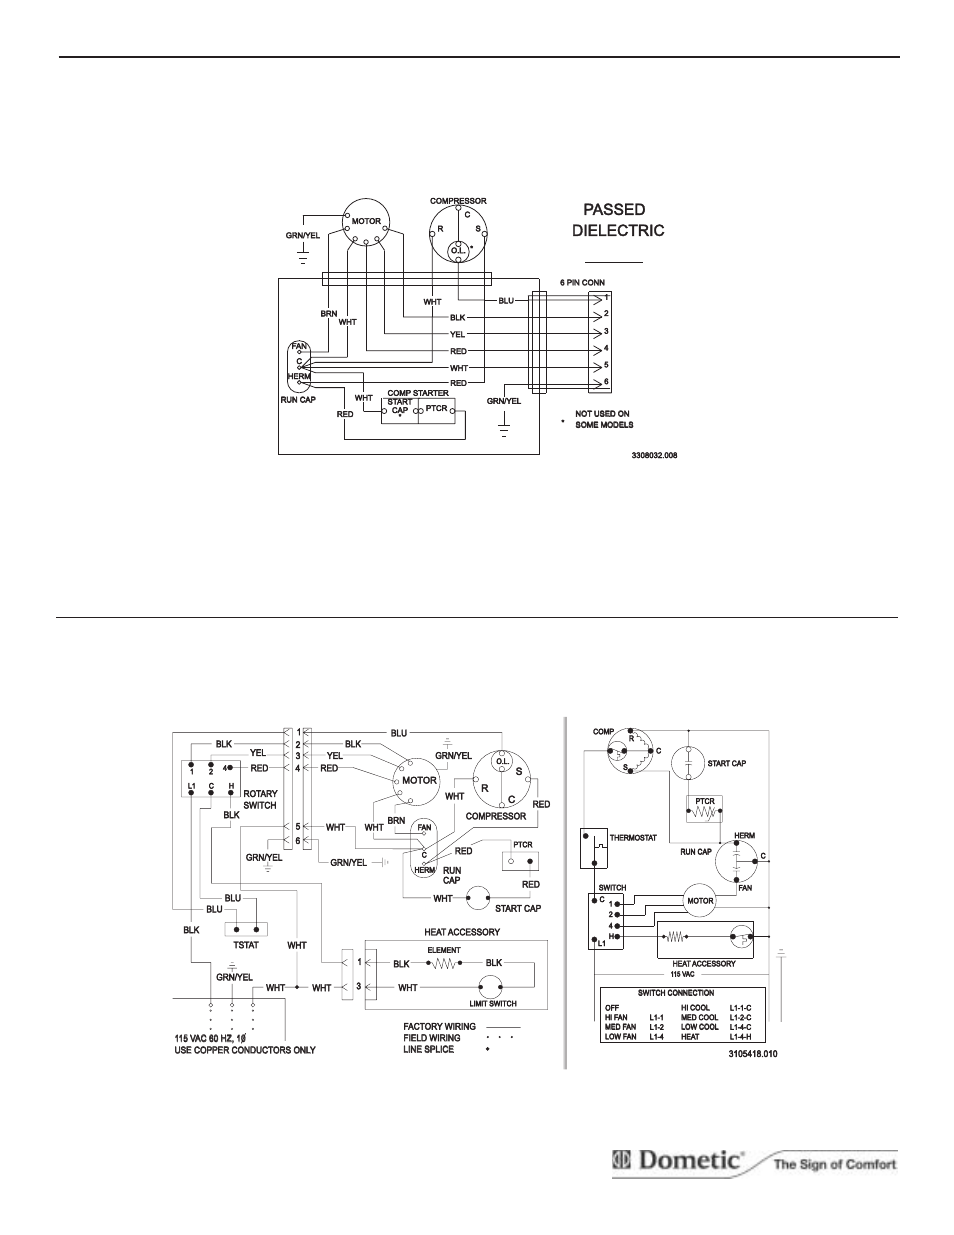 dometic 600315331 page10 glamorous dometic air conditioner wiring diagram ideas wiring  at readyjetset.co